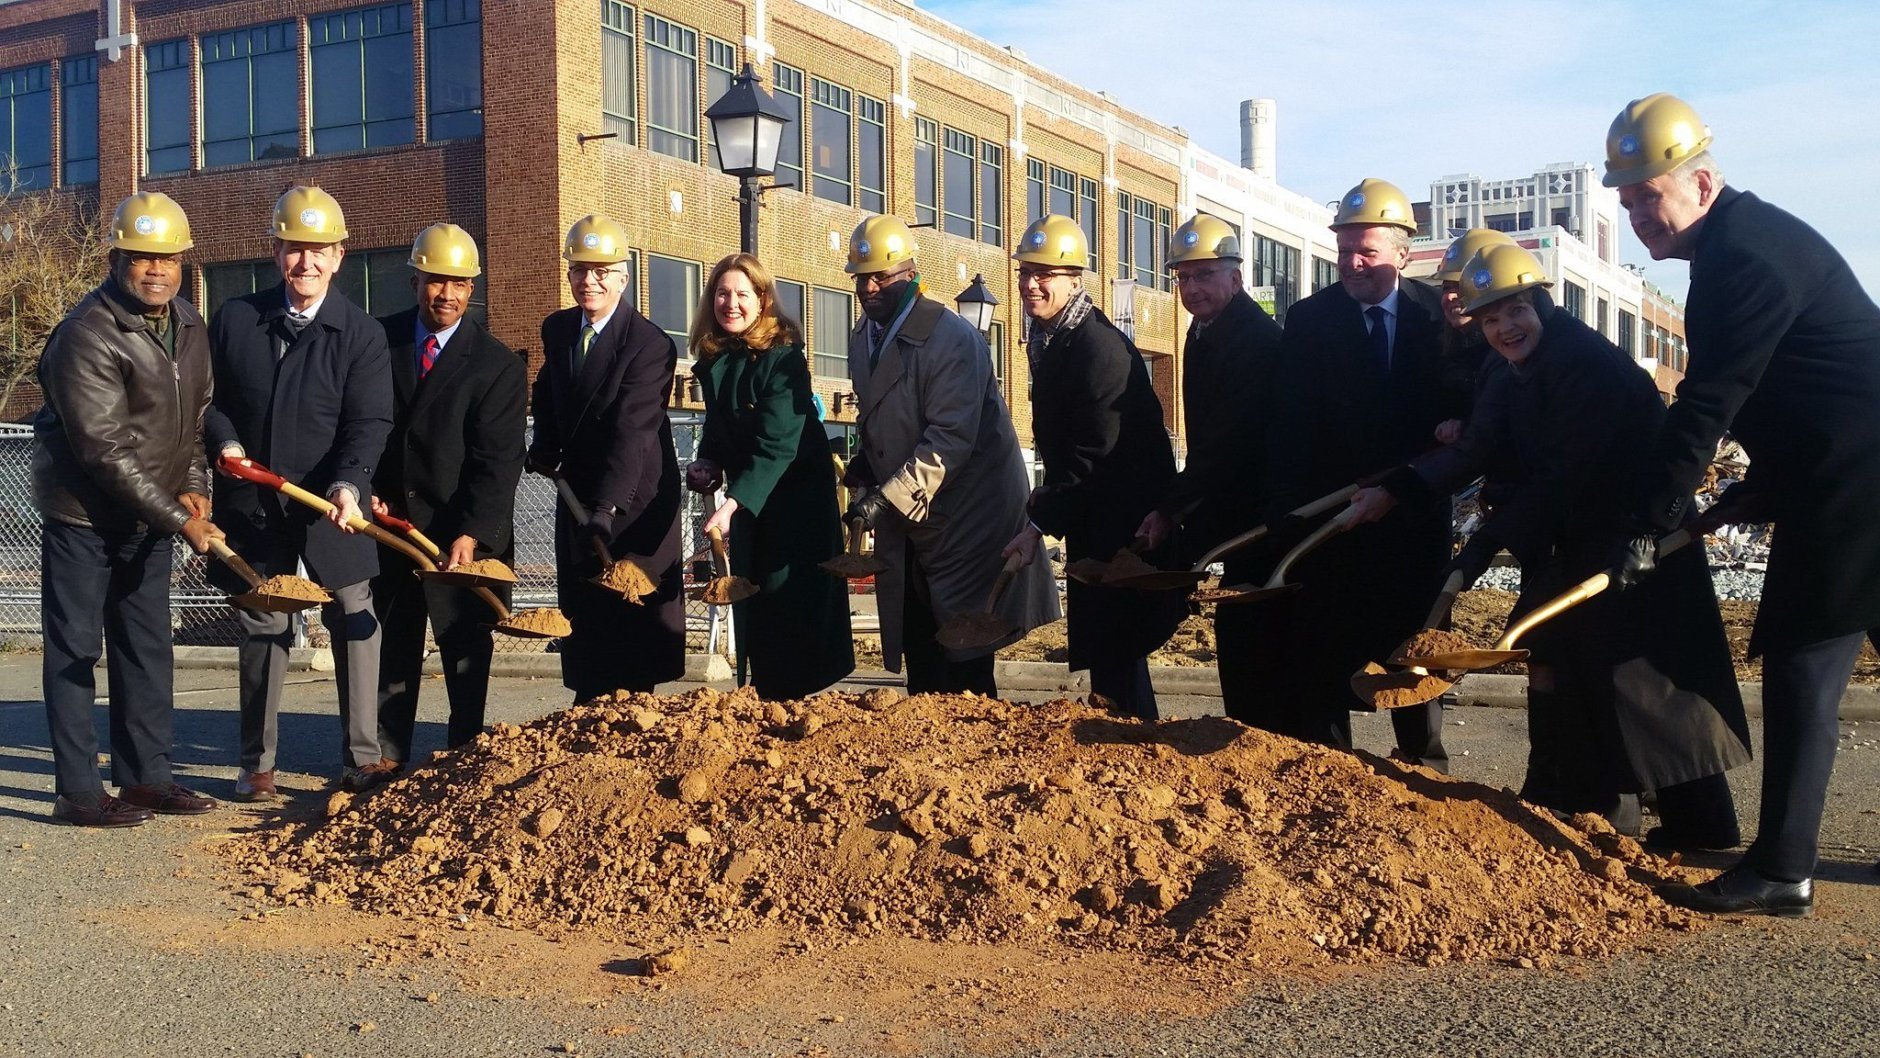 Alexandria's Waterfront Plan in Alexandria, Virginia, has been years in the making and the groundbreaking ceremony on Saturday was a major step in turning the plan into reality. (WTOP/Kathy Stewart)